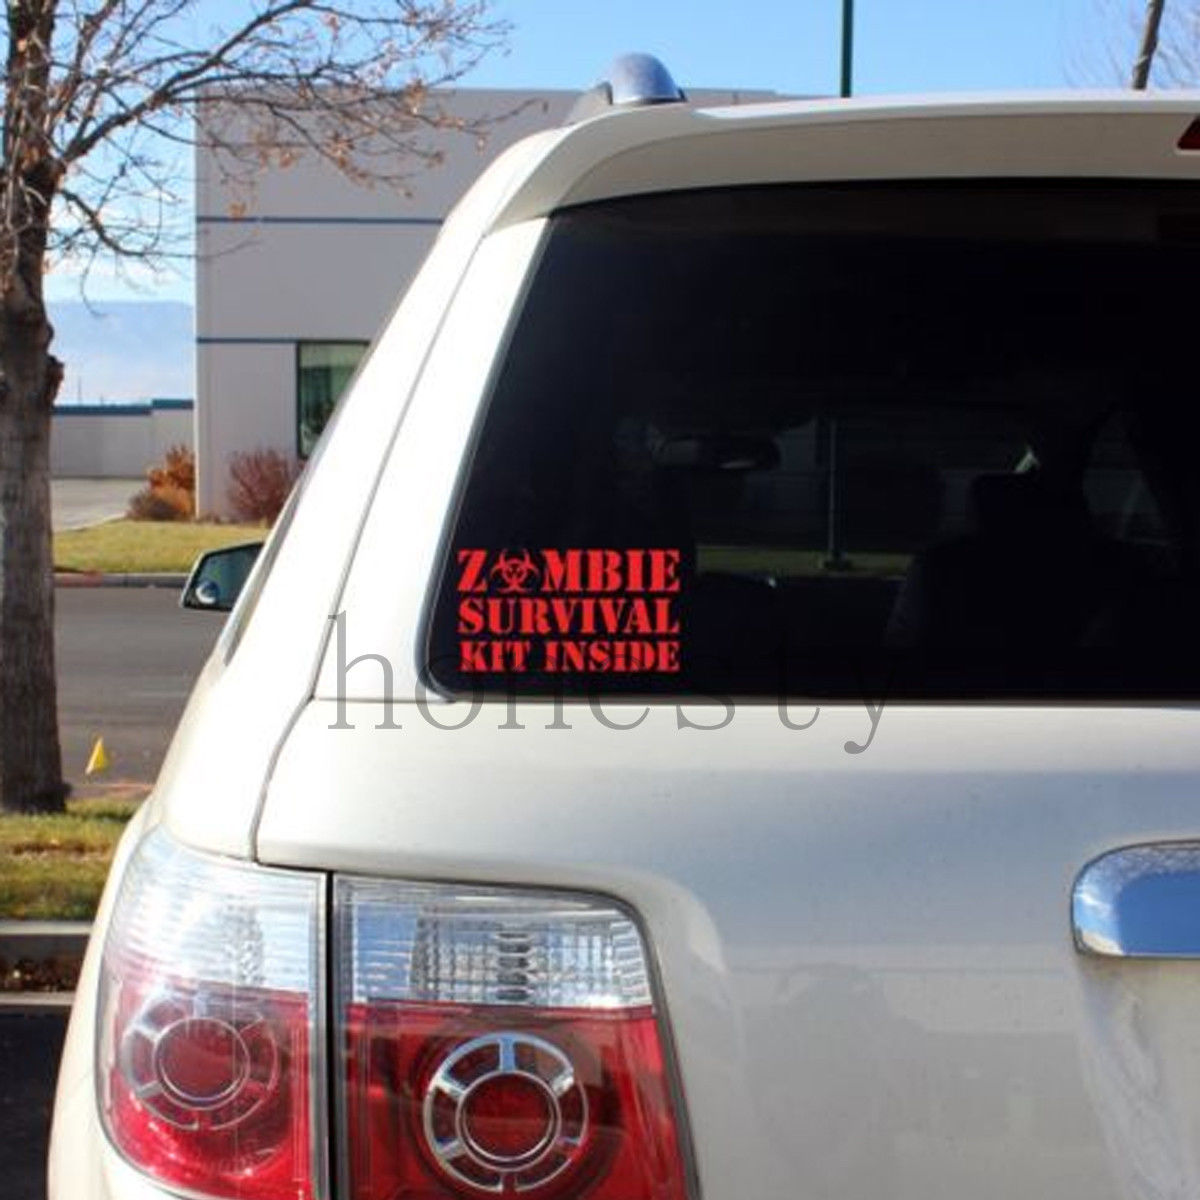 bloody zombie survival kit inside print pattern car window winscreen wall bumper decal vinyl sticker halloween decoration gift